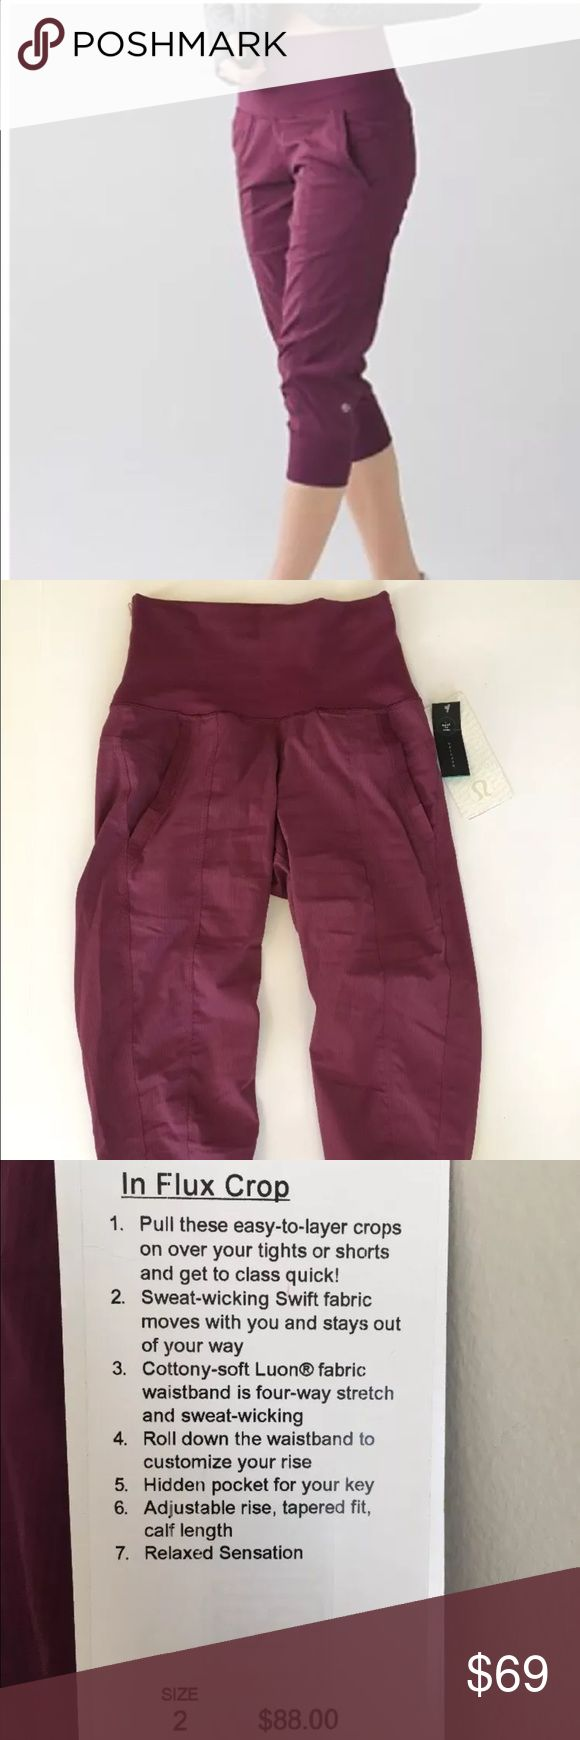 New Lululemon In Flux Crop red grape pants size 2 New Lululemon In Flux Crop red grape pants, size 2 lululemon athletica Pants Capris